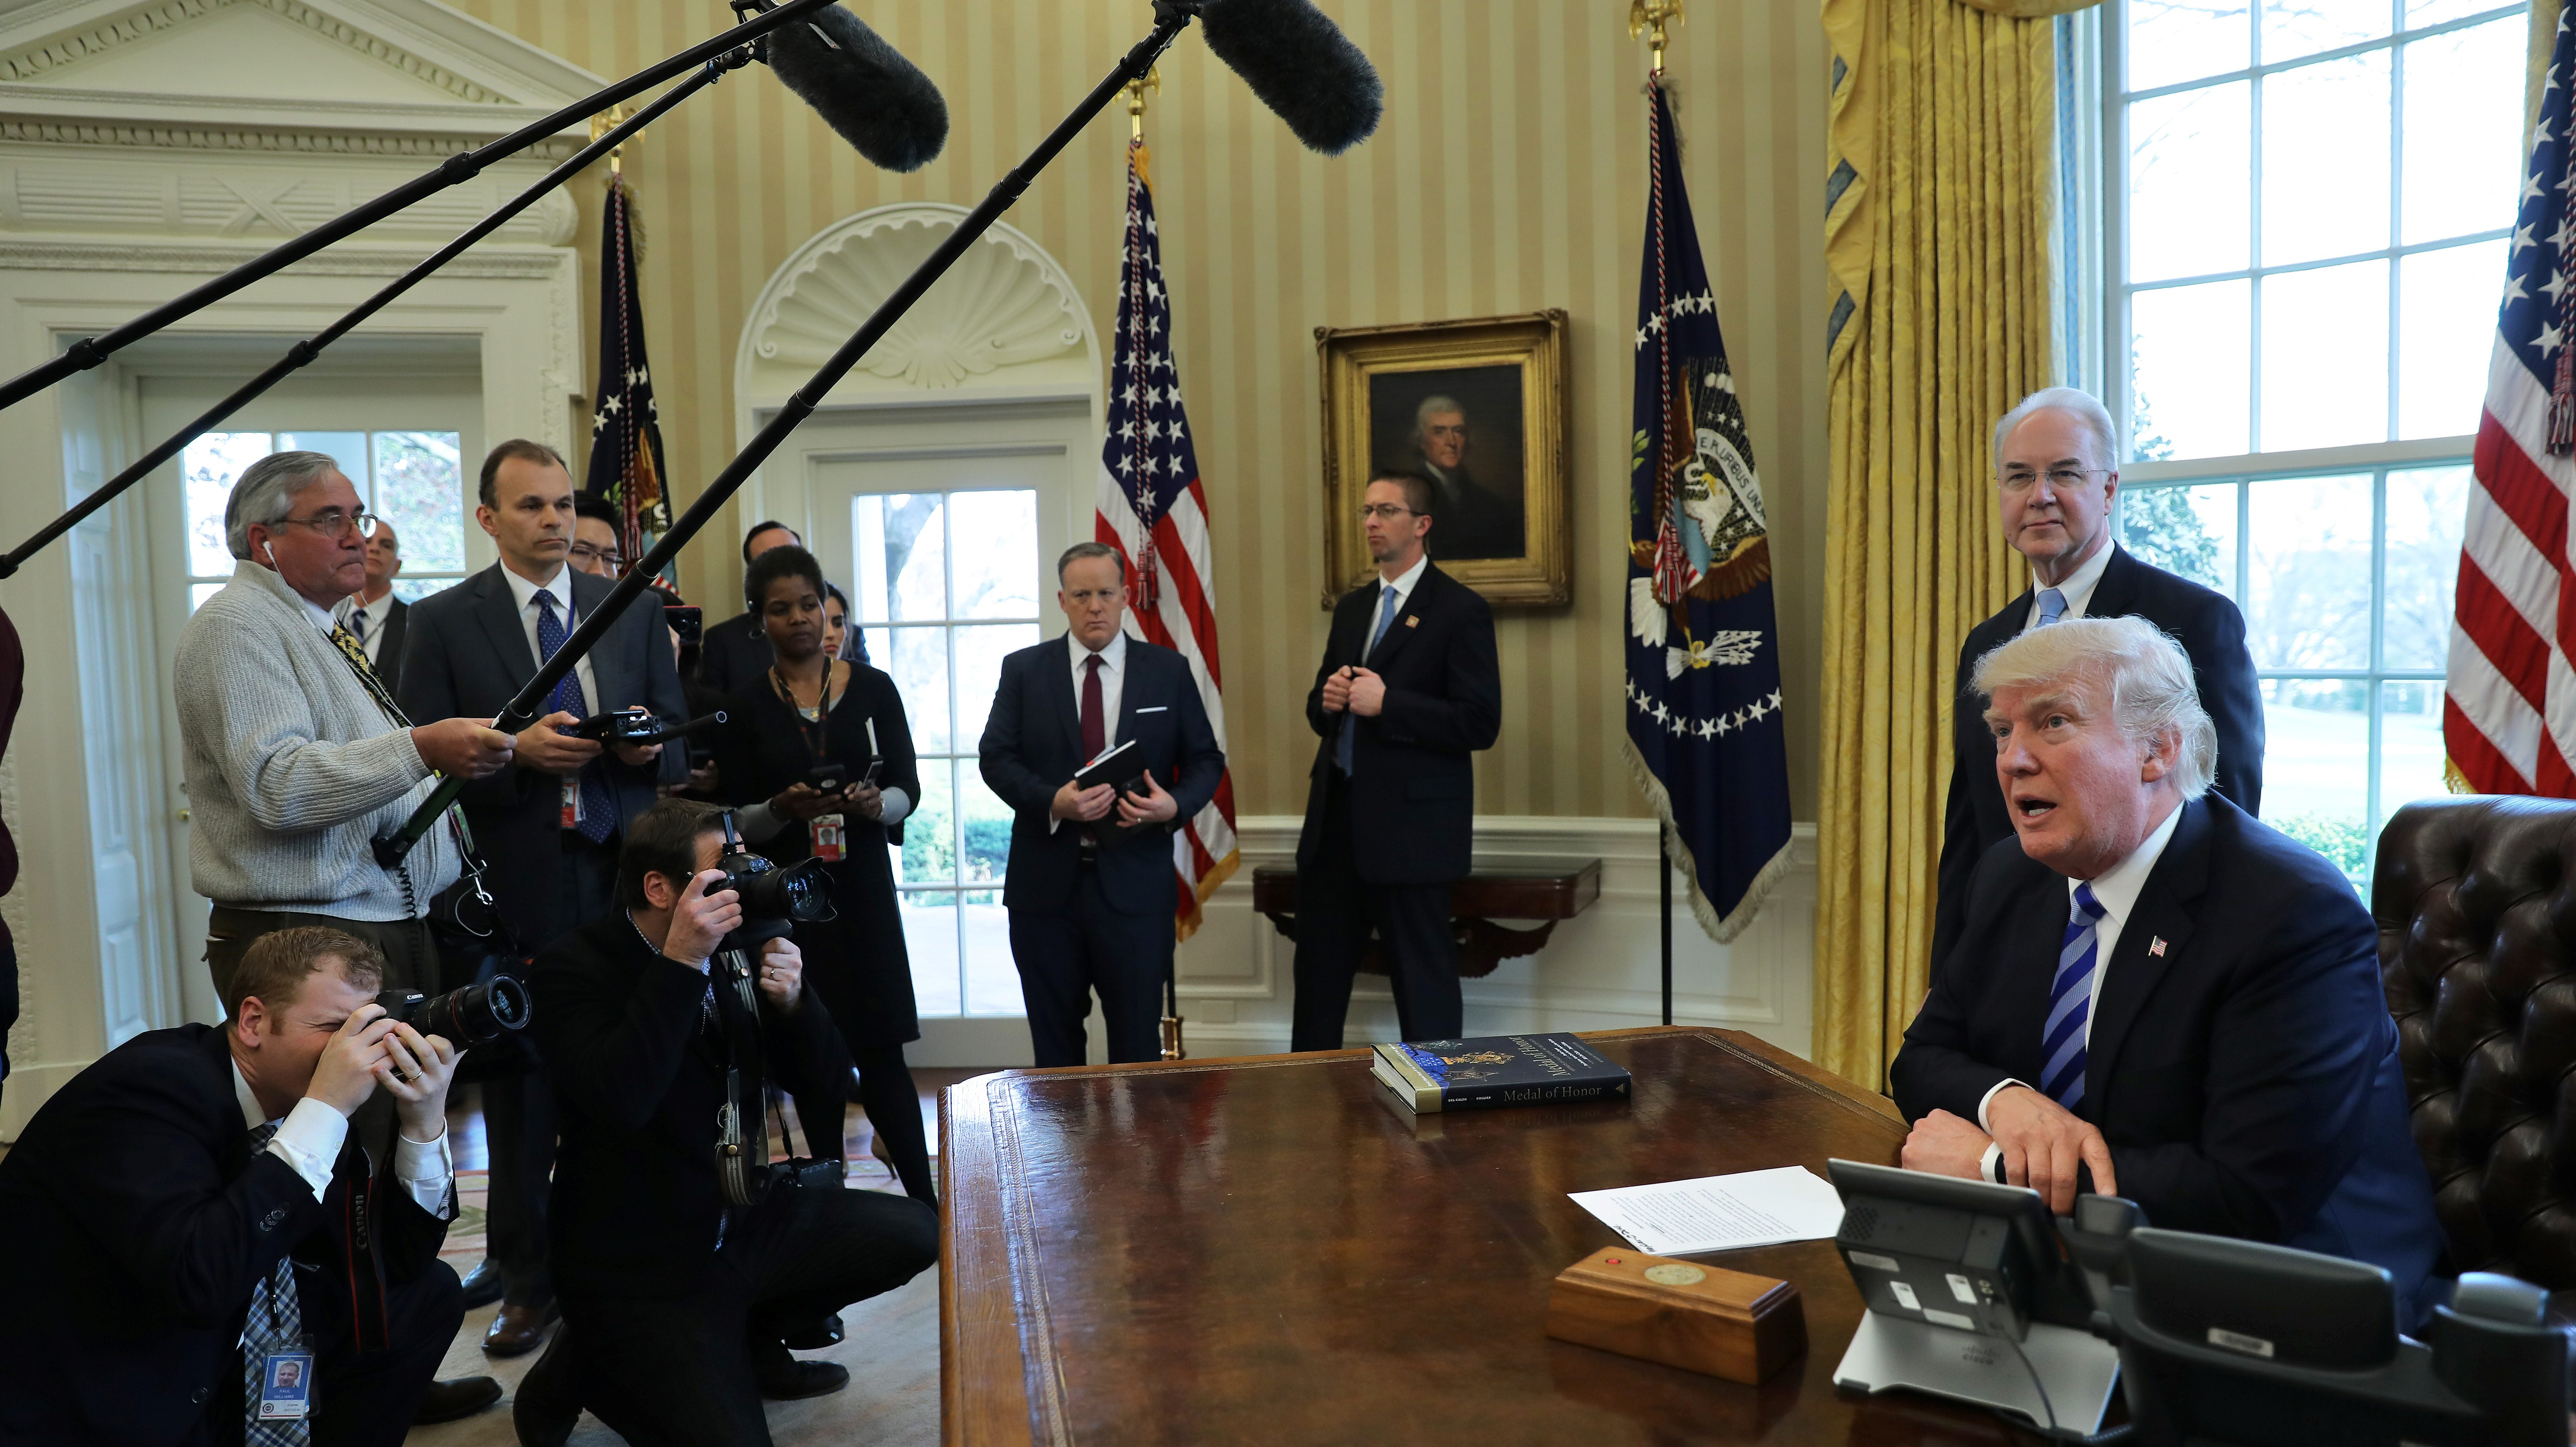 U.S. President Donald Trump talks to journalists at the Oval Office of the White House after the AHCA health care bill was pulled before a vote, accompanied by U.S. Health and Human Services Secretary Tom Price (2nd R) and Vice President Mike Pence (not pictured), in Washington, U.S., March 24.